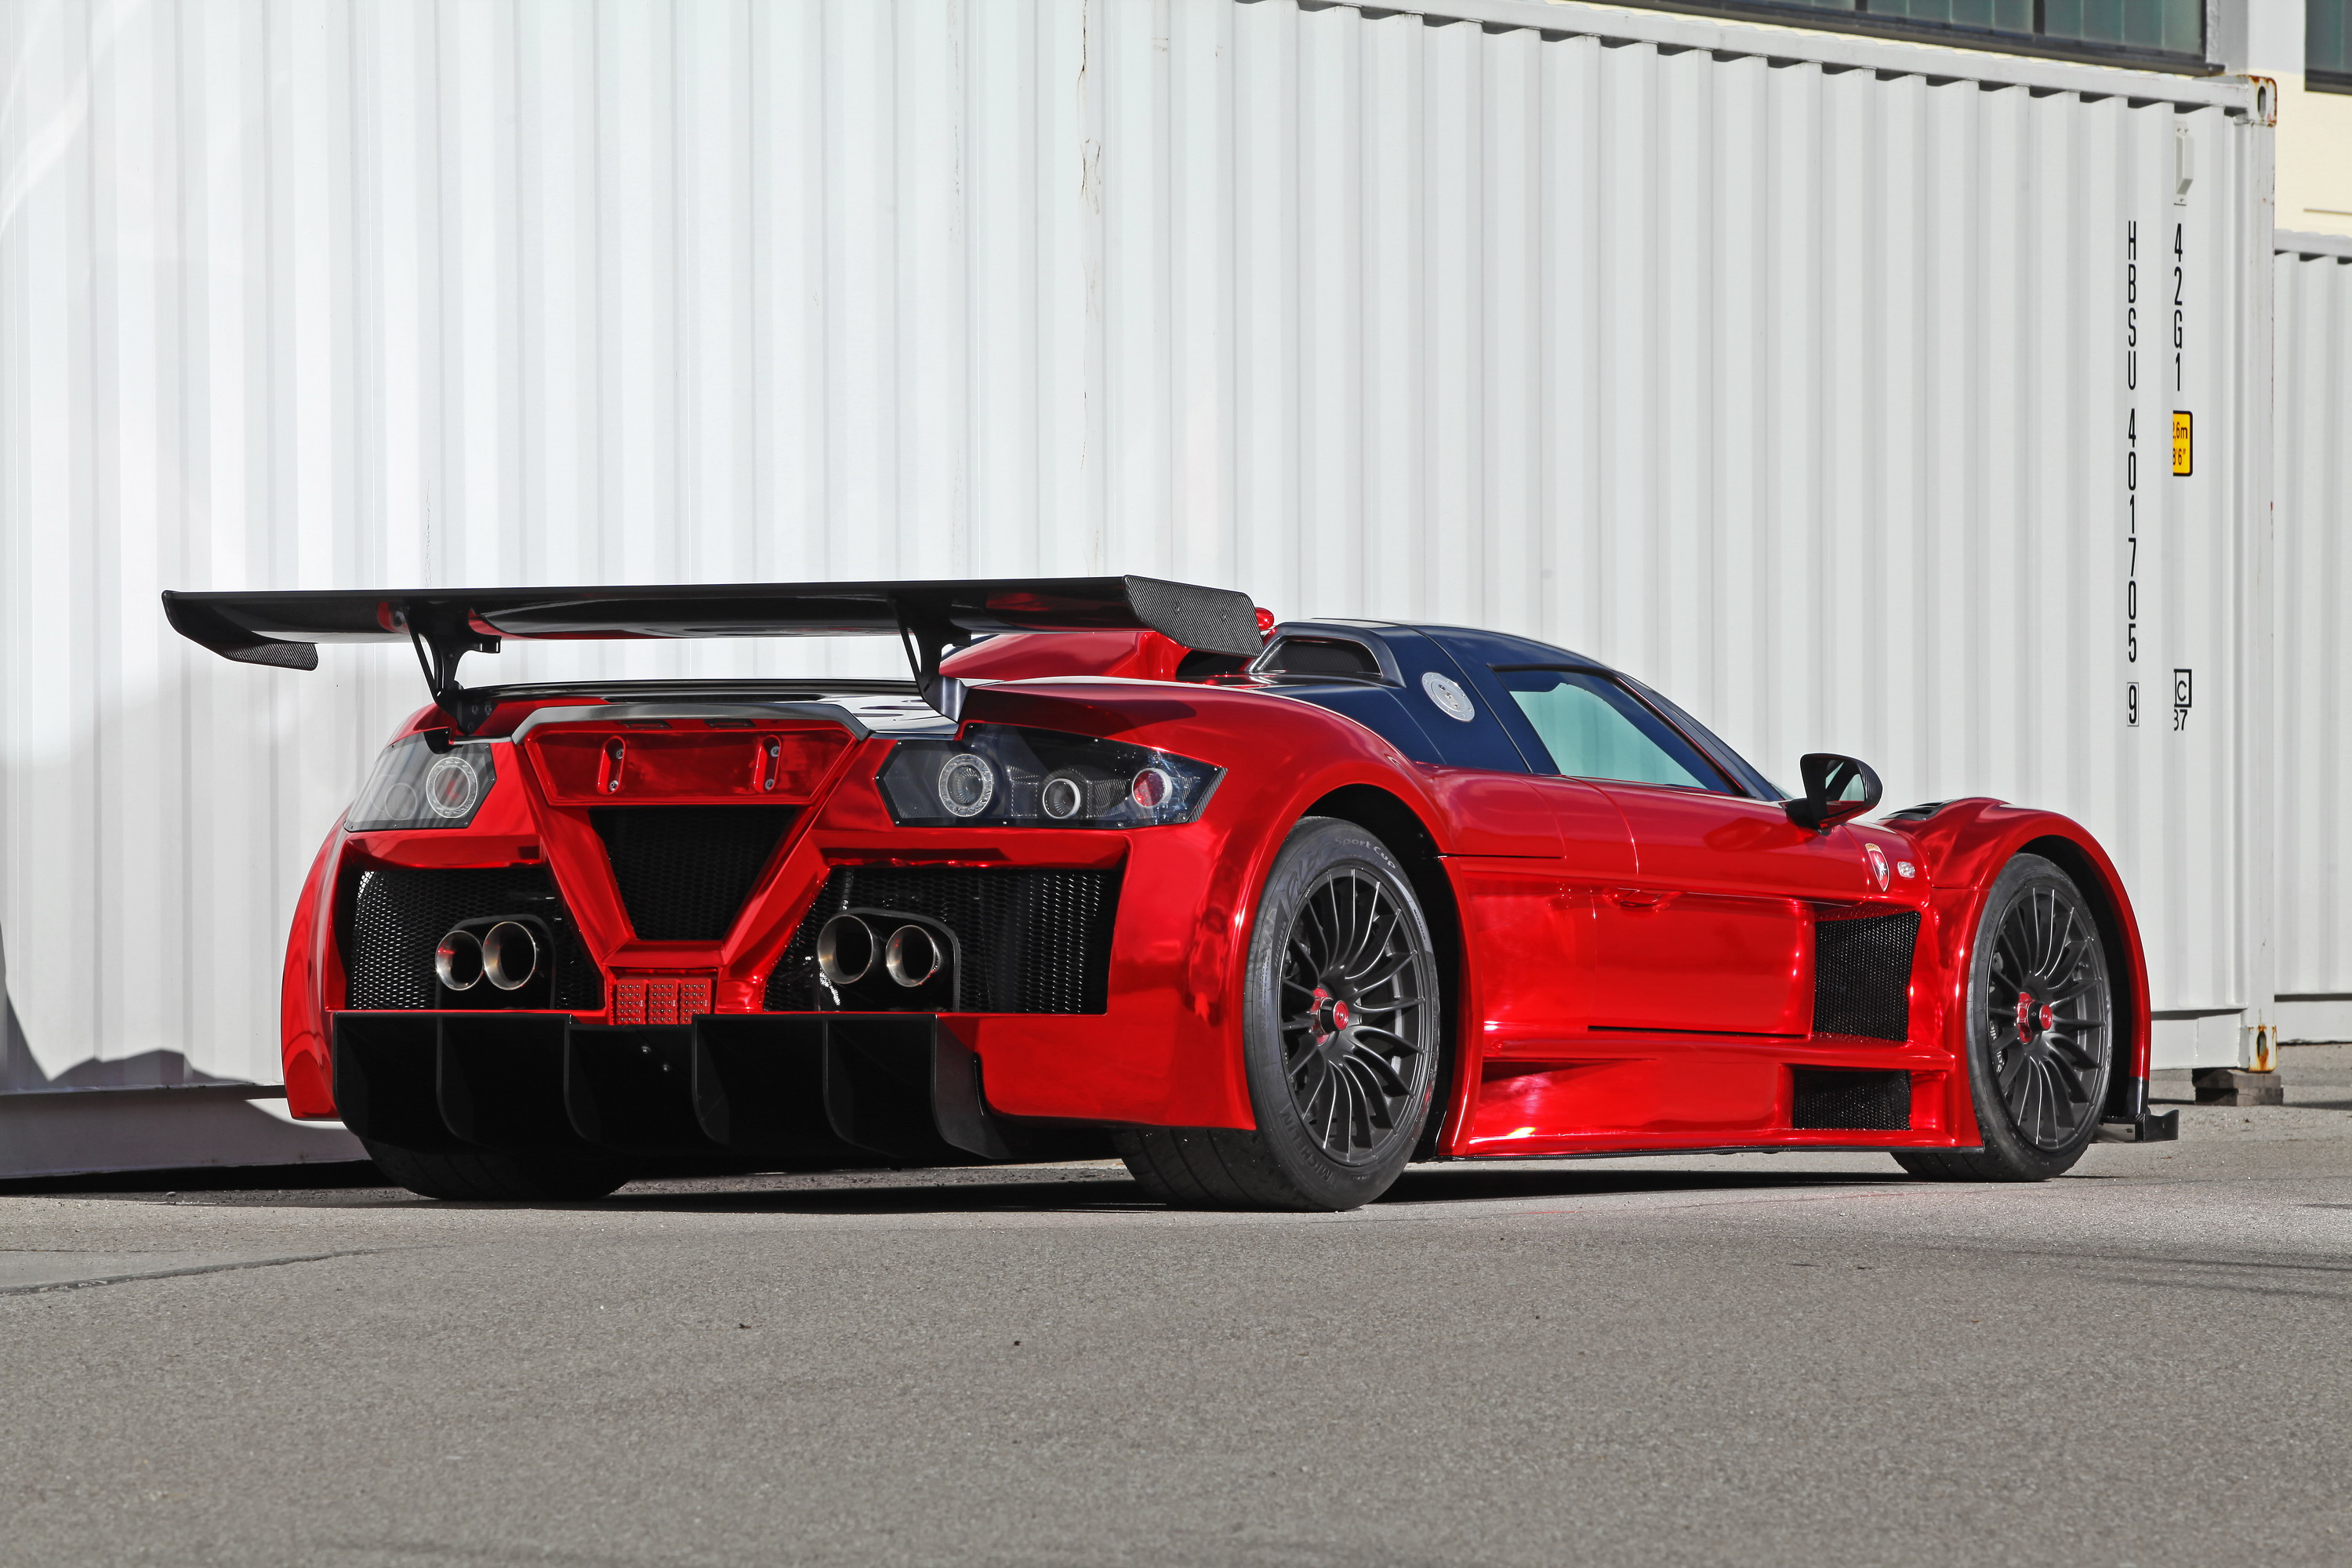 All In One Super Cars Wallpapers 2013 Gumpert Apollo S Ironcar By 2m Designs Review Top Speed